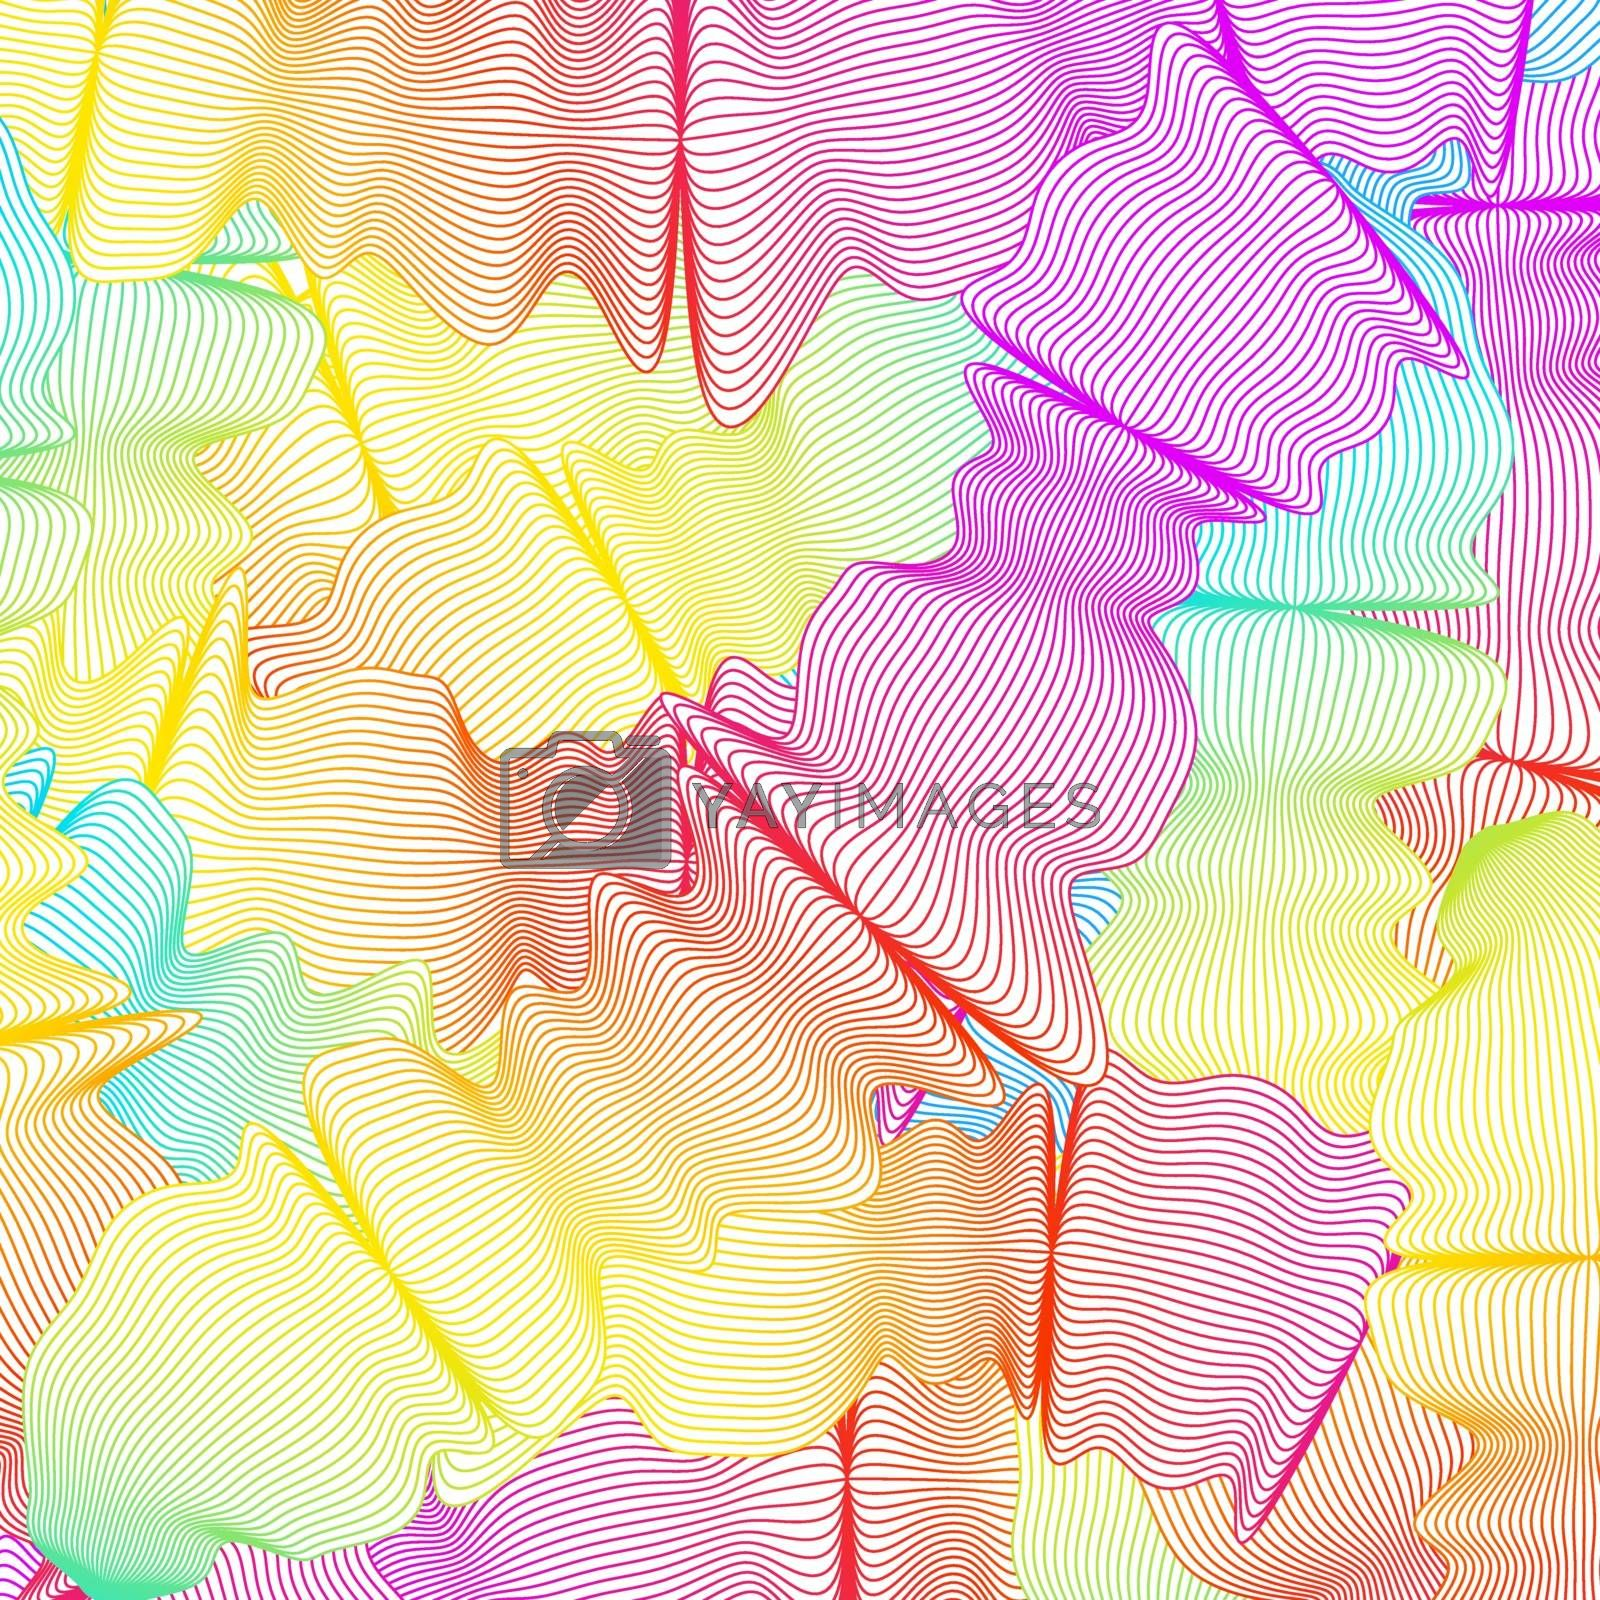 Illustration of wavy curved colored lines. EPS 8 vector file included